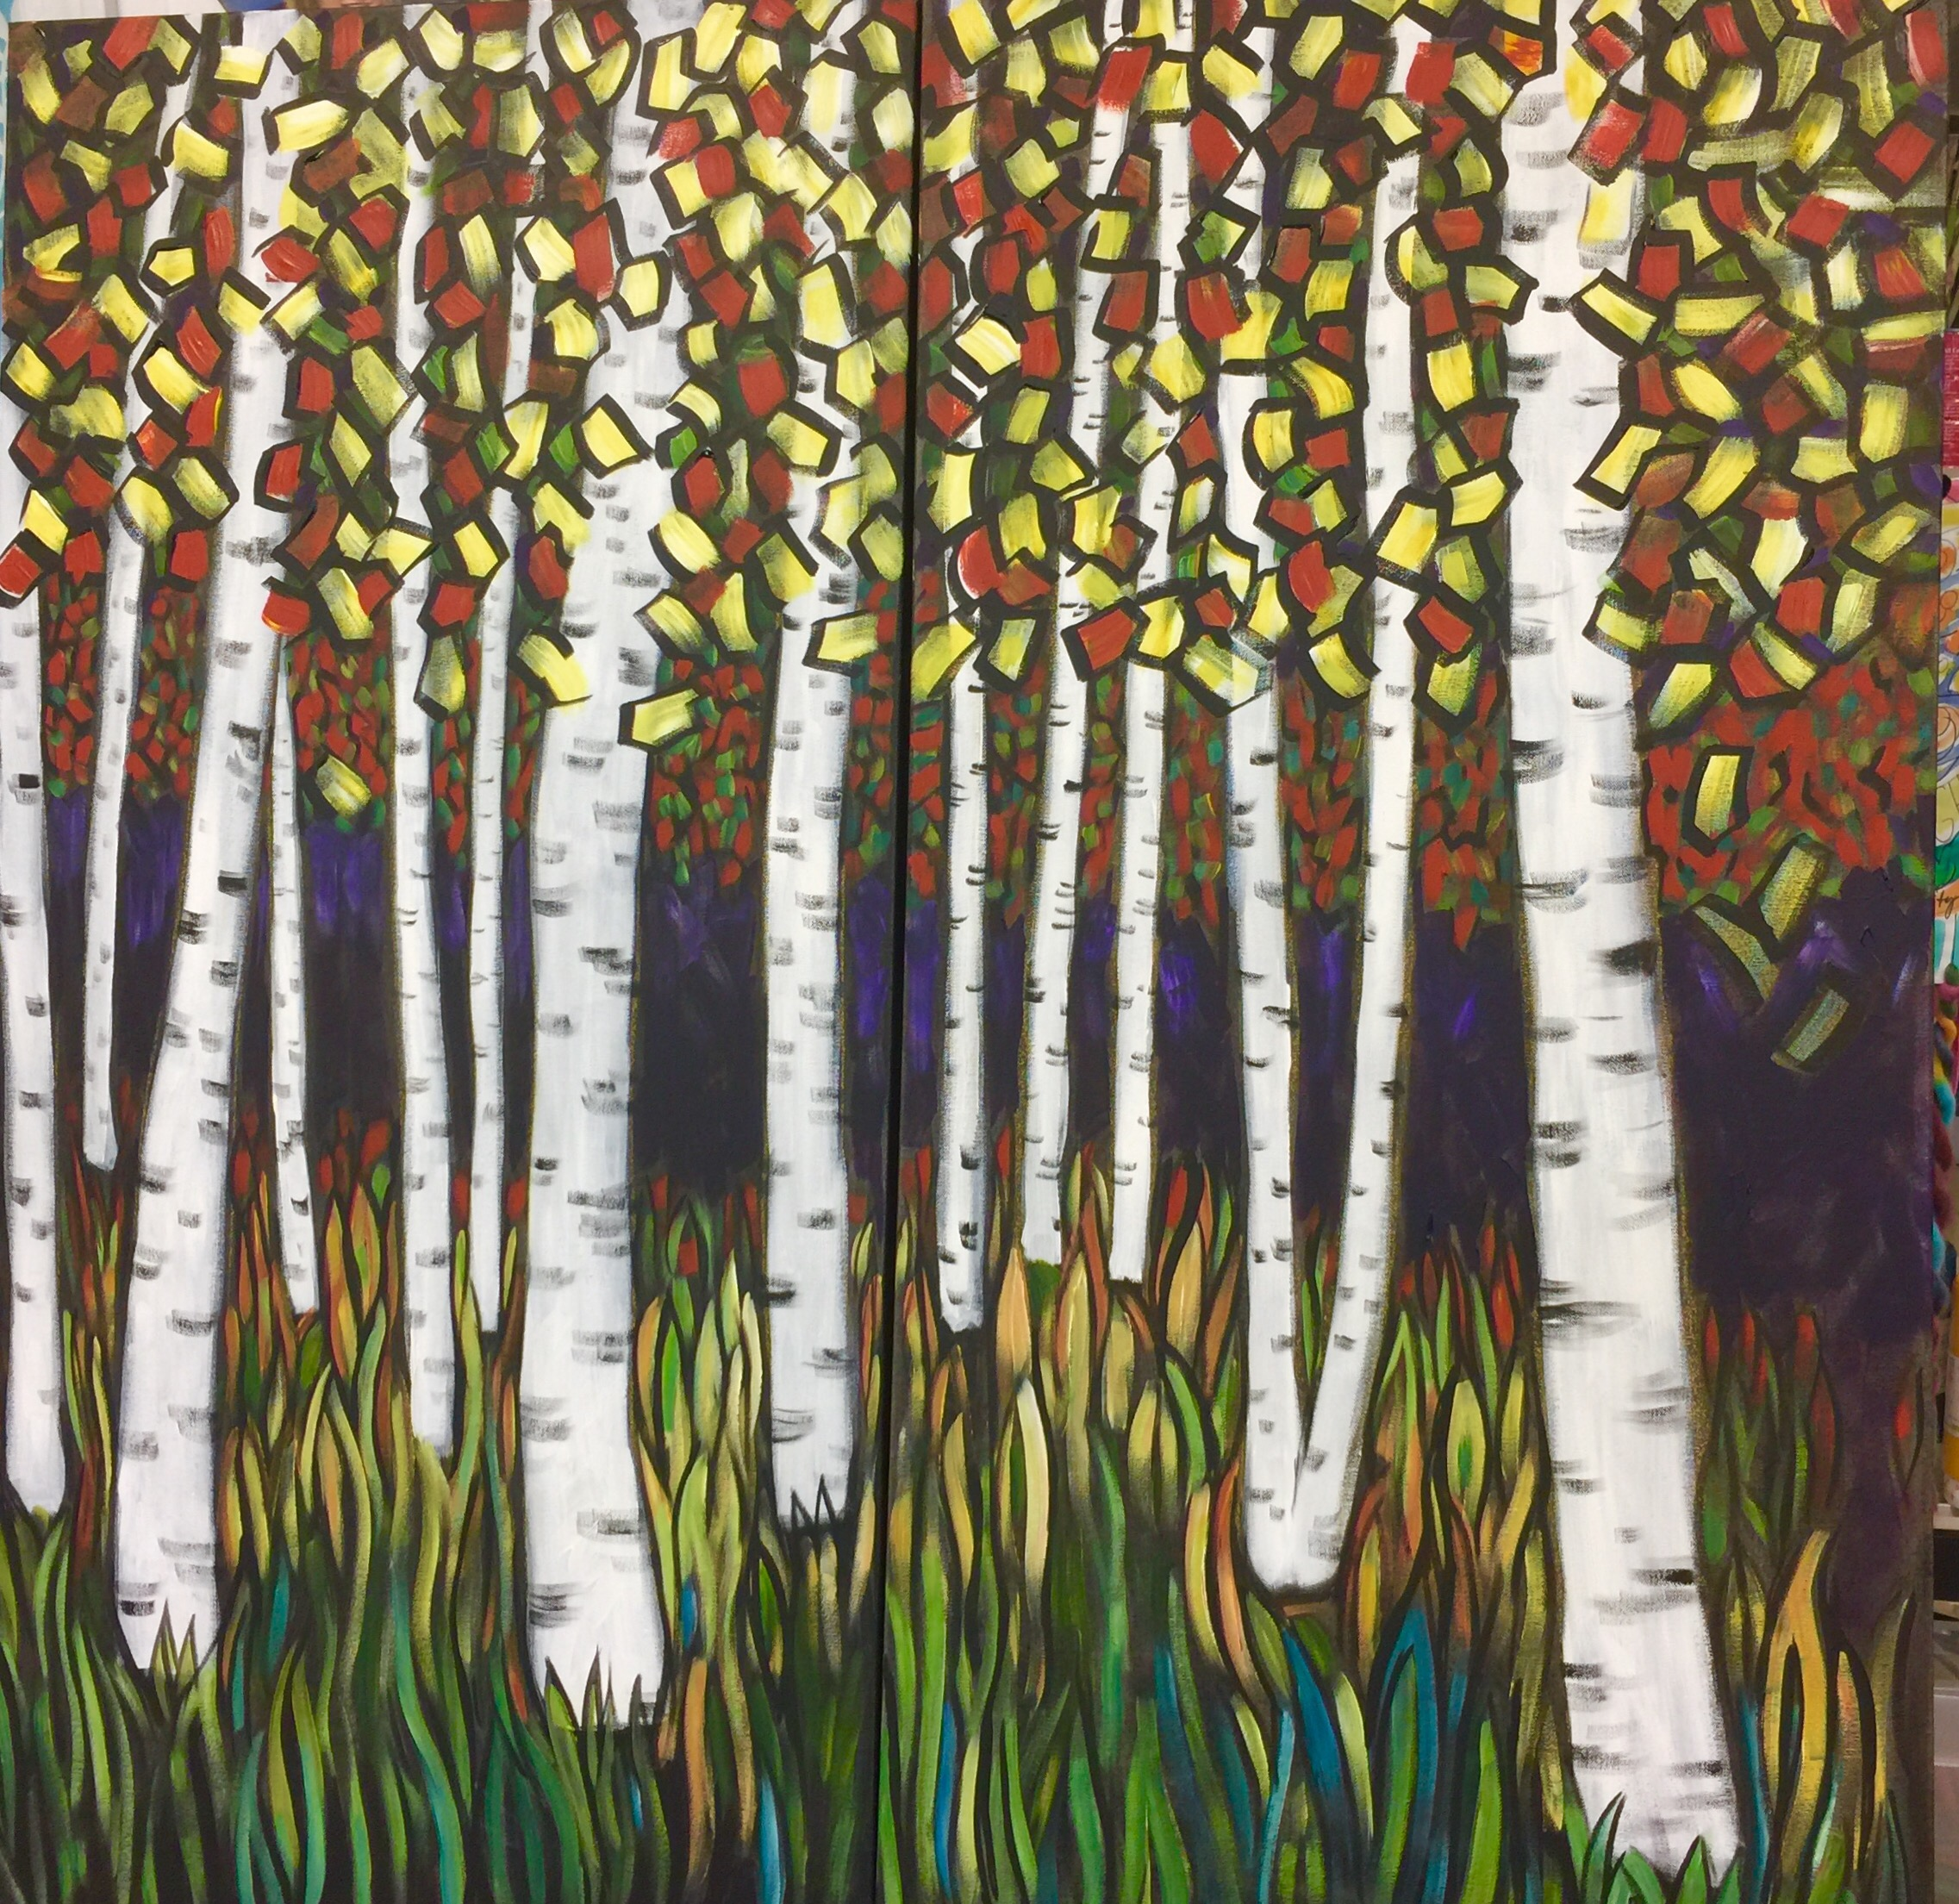 Acrylic / Canvas  2ft X 4 Ft   2 canvases created to be viewed side by side, can be displayed separately.  $650 each